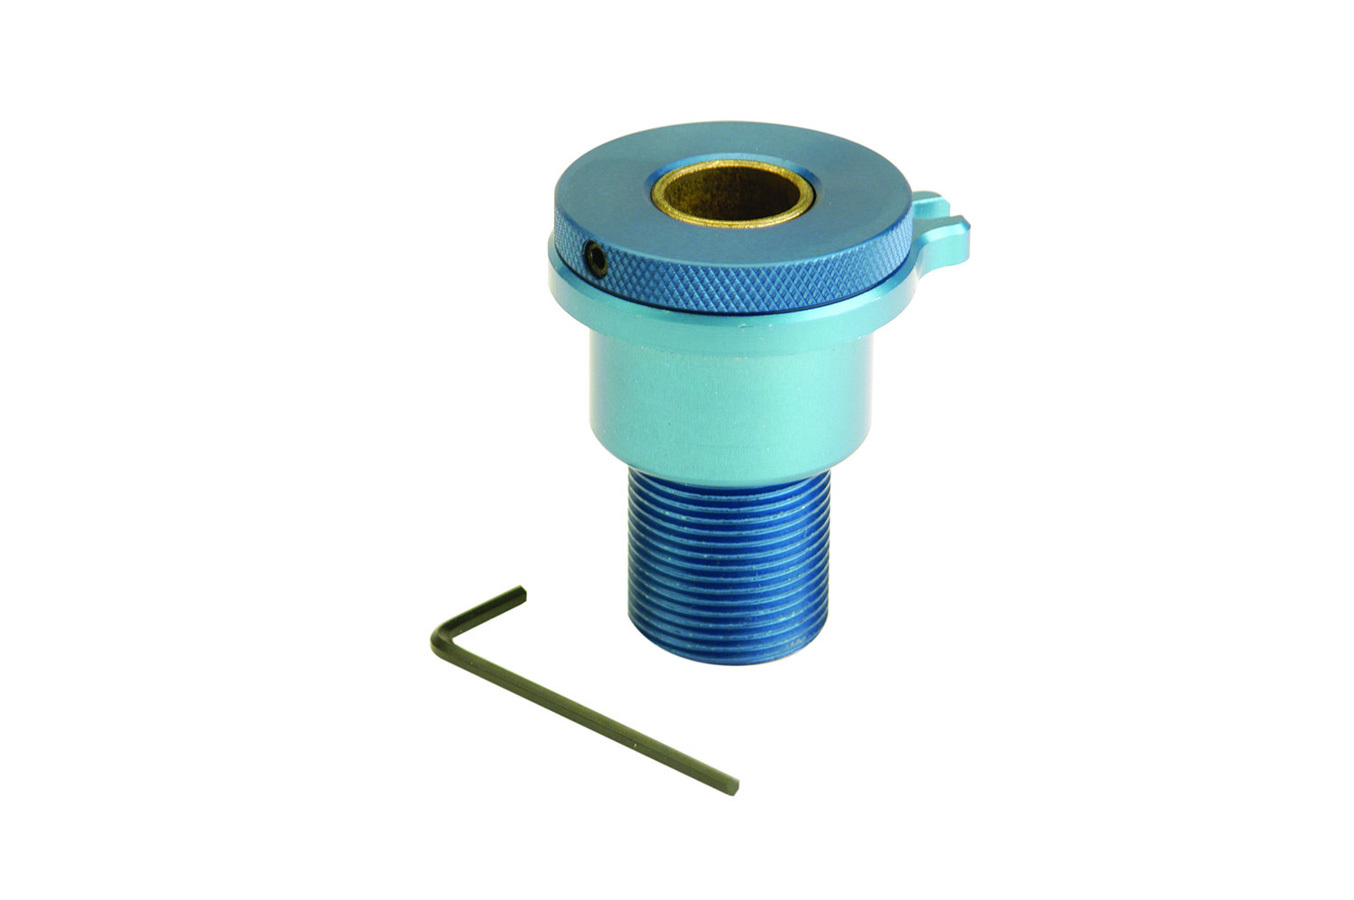 Ford Firewall Clutch Cable Adjuster